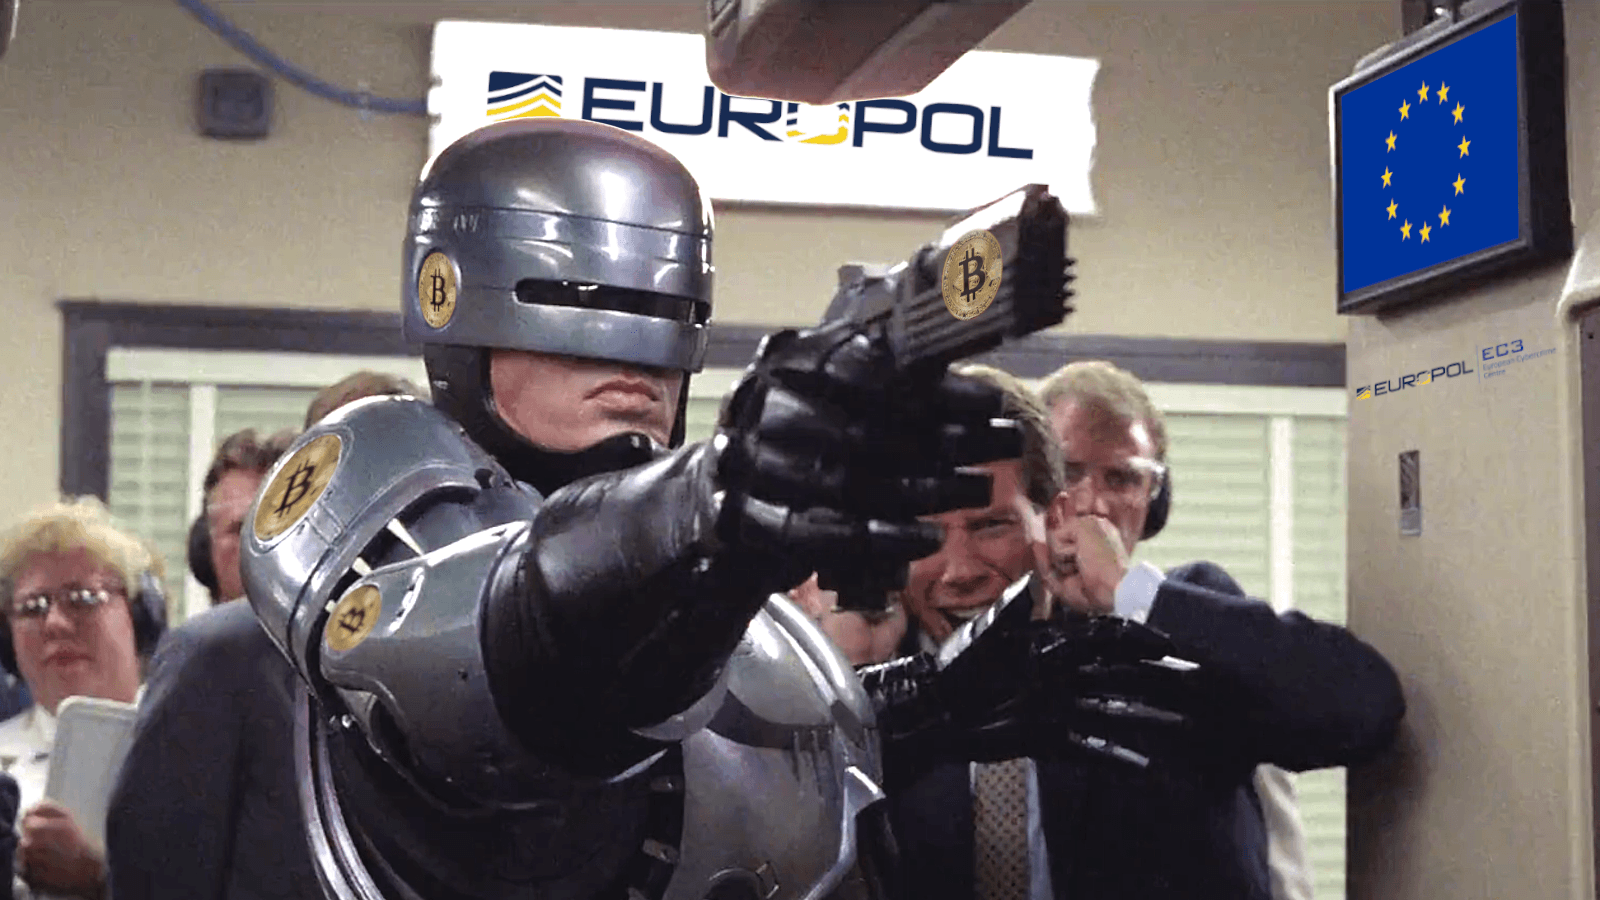 Europol is developing a 'game' to teach officers how to trace cryptocurrency